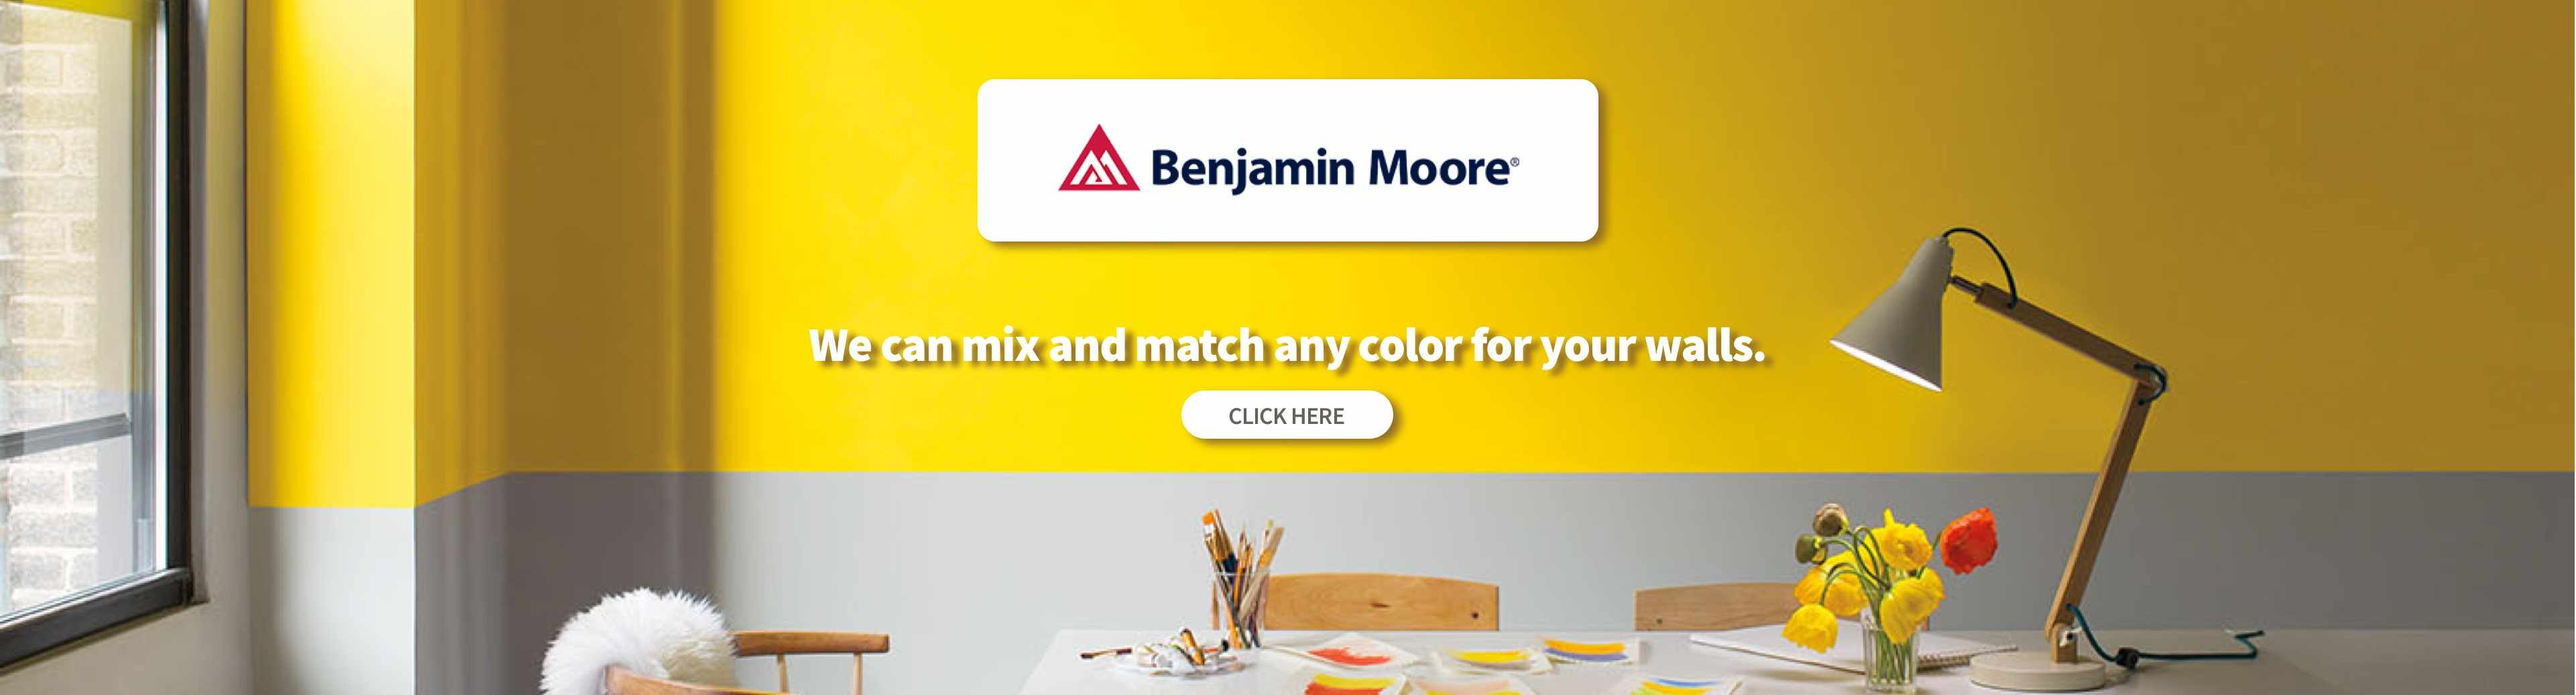 An minimalist type room is painted in Benjamin Moore bright yellow and light grey a table with art supplies and dead tuplips are lit by a trendy desk lamp.